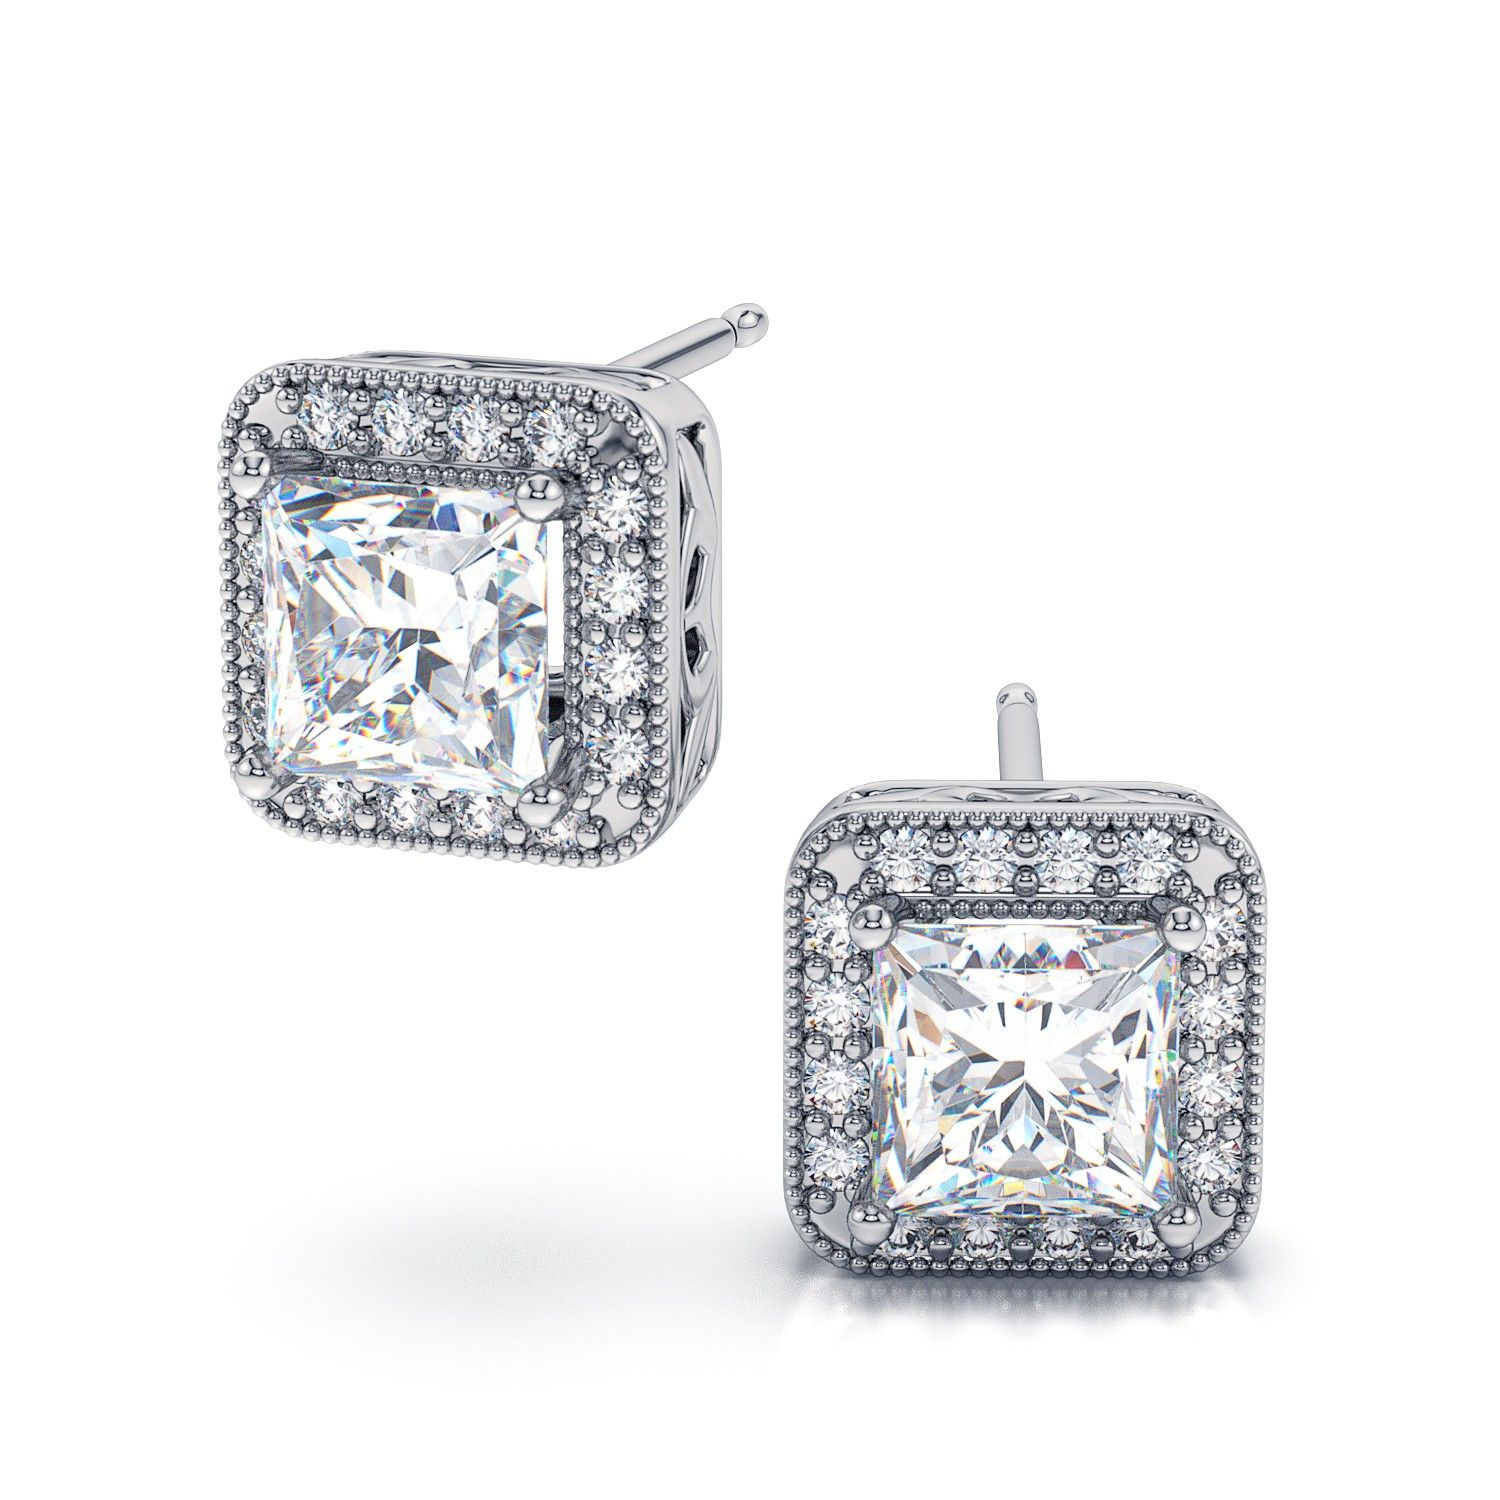 112ctw Halo Style Princess Cut Diamond Stud Earrings In 18kt White Gold